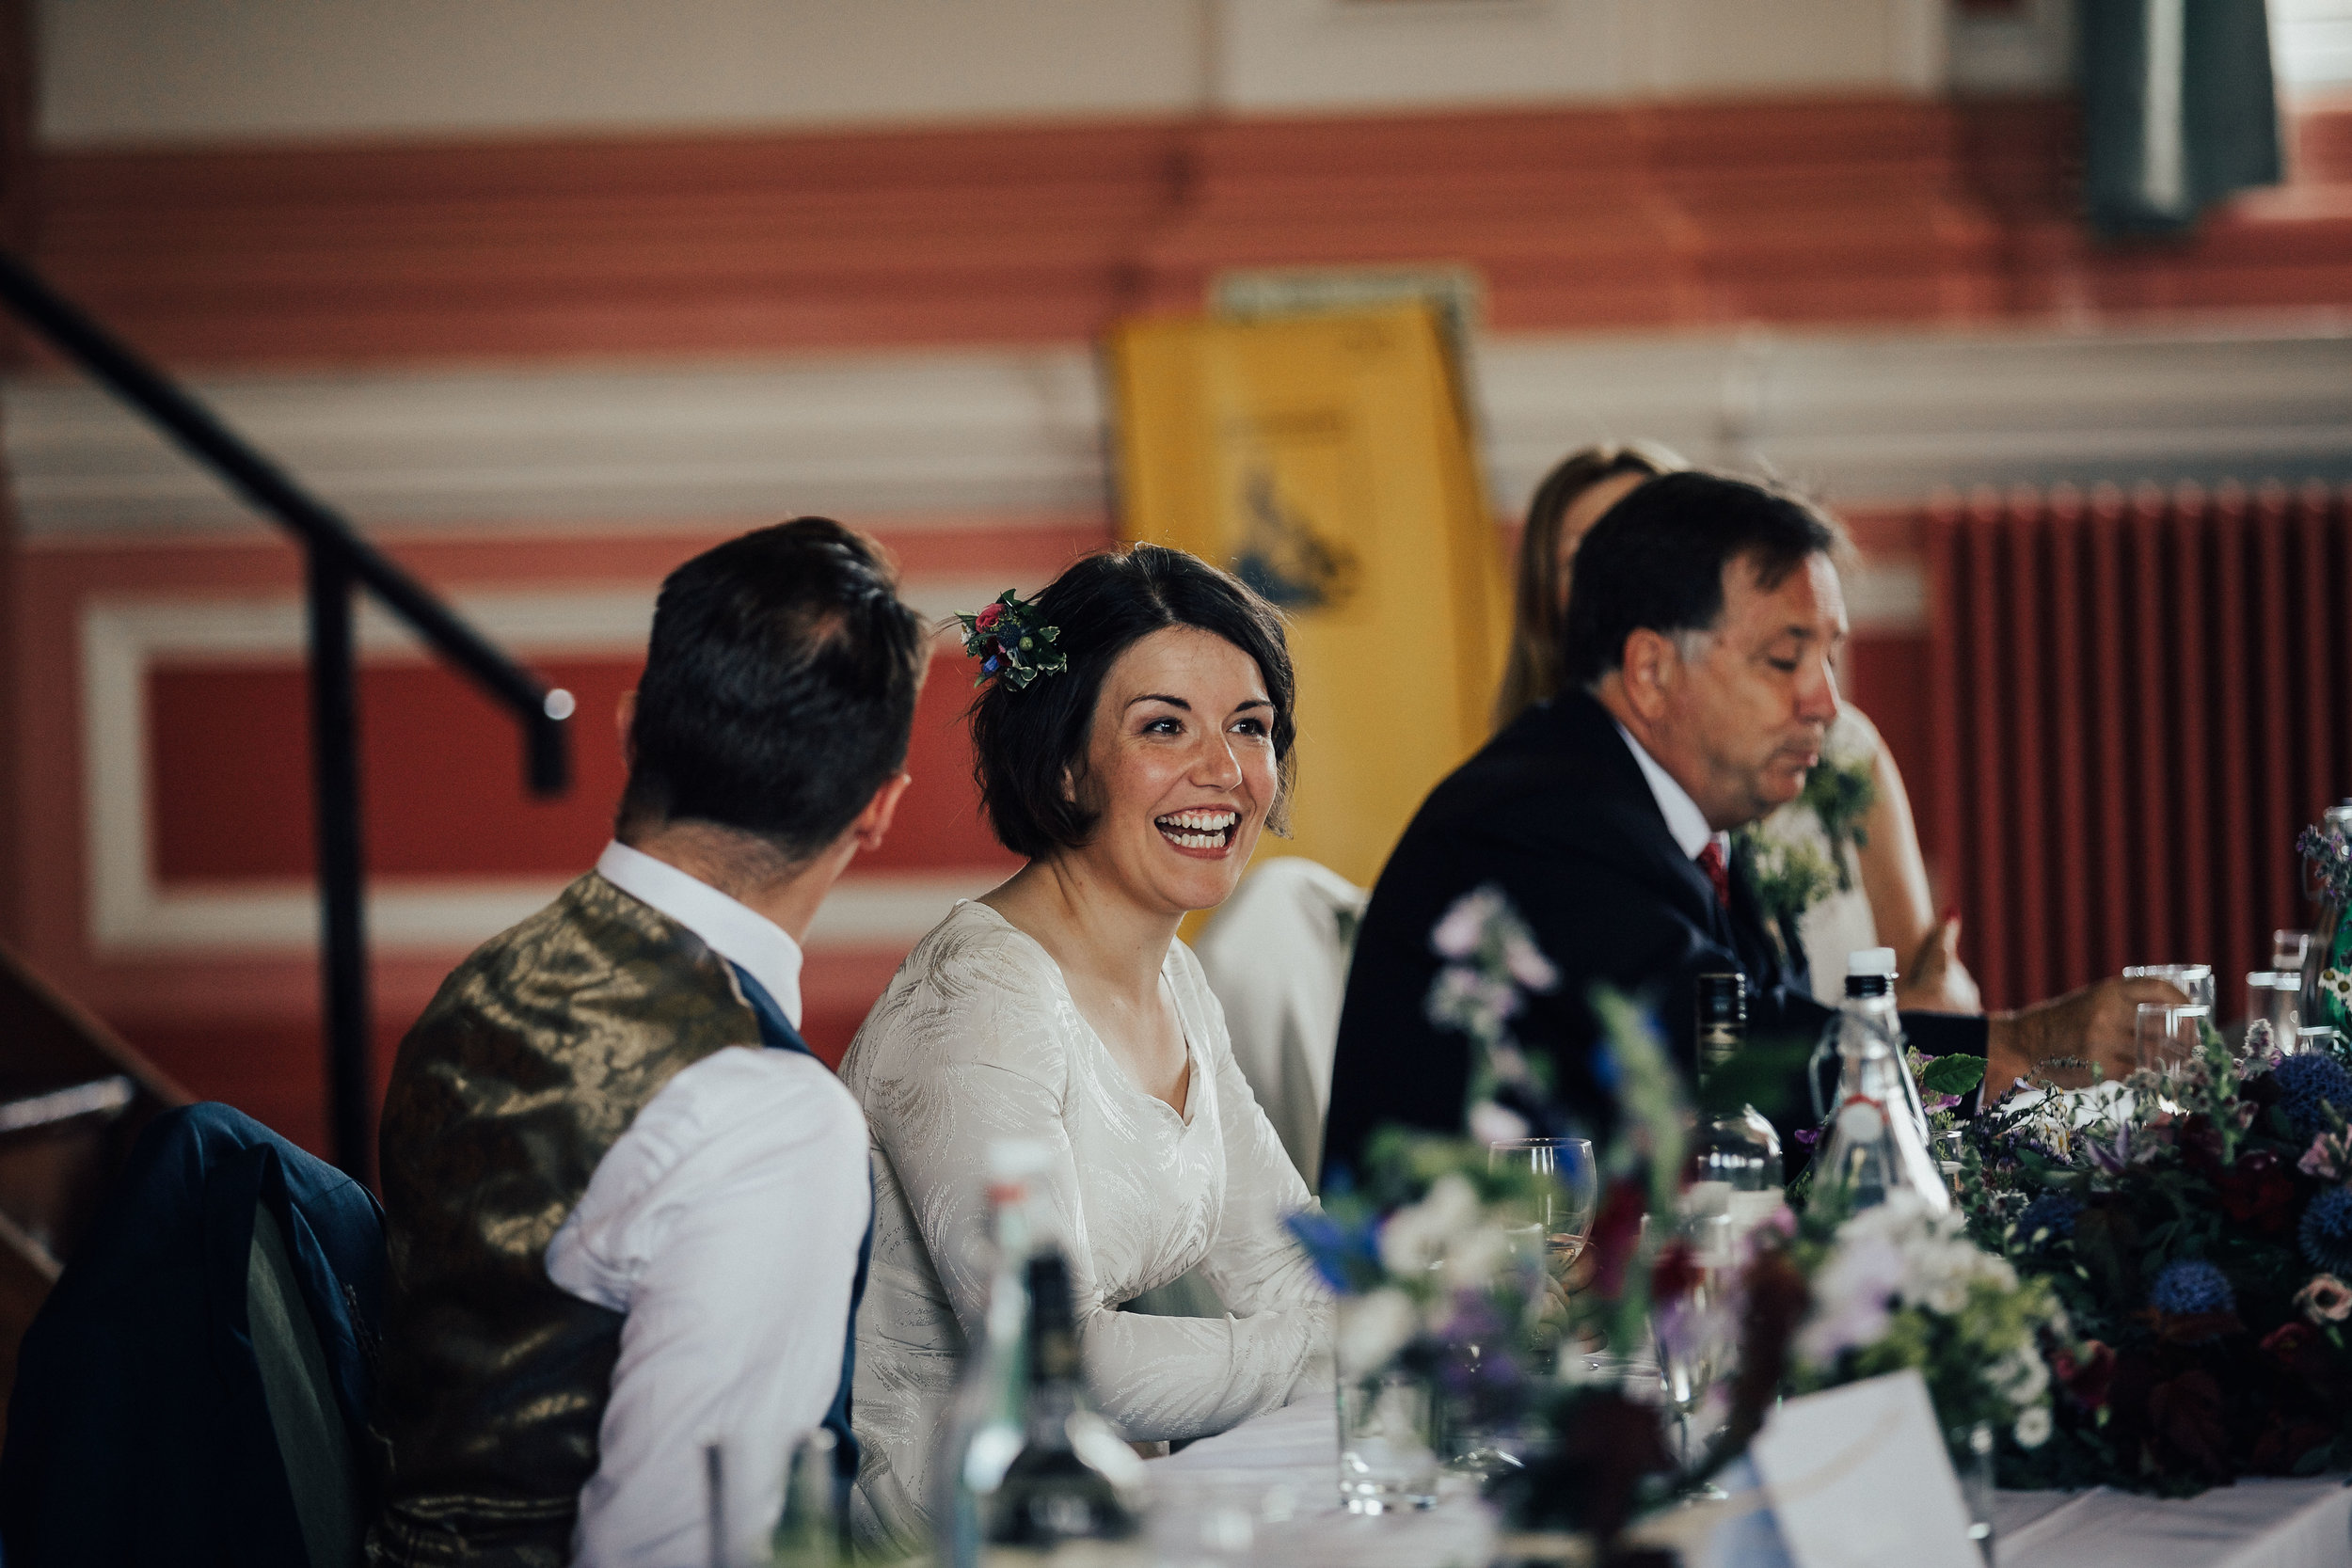 VICTORIA_HALL_SALTAIRE_VINTAGE_YORKSHIRE_WEDDING_PJ_PHILLIPS_PHOTOGRAPHY_94.jpg